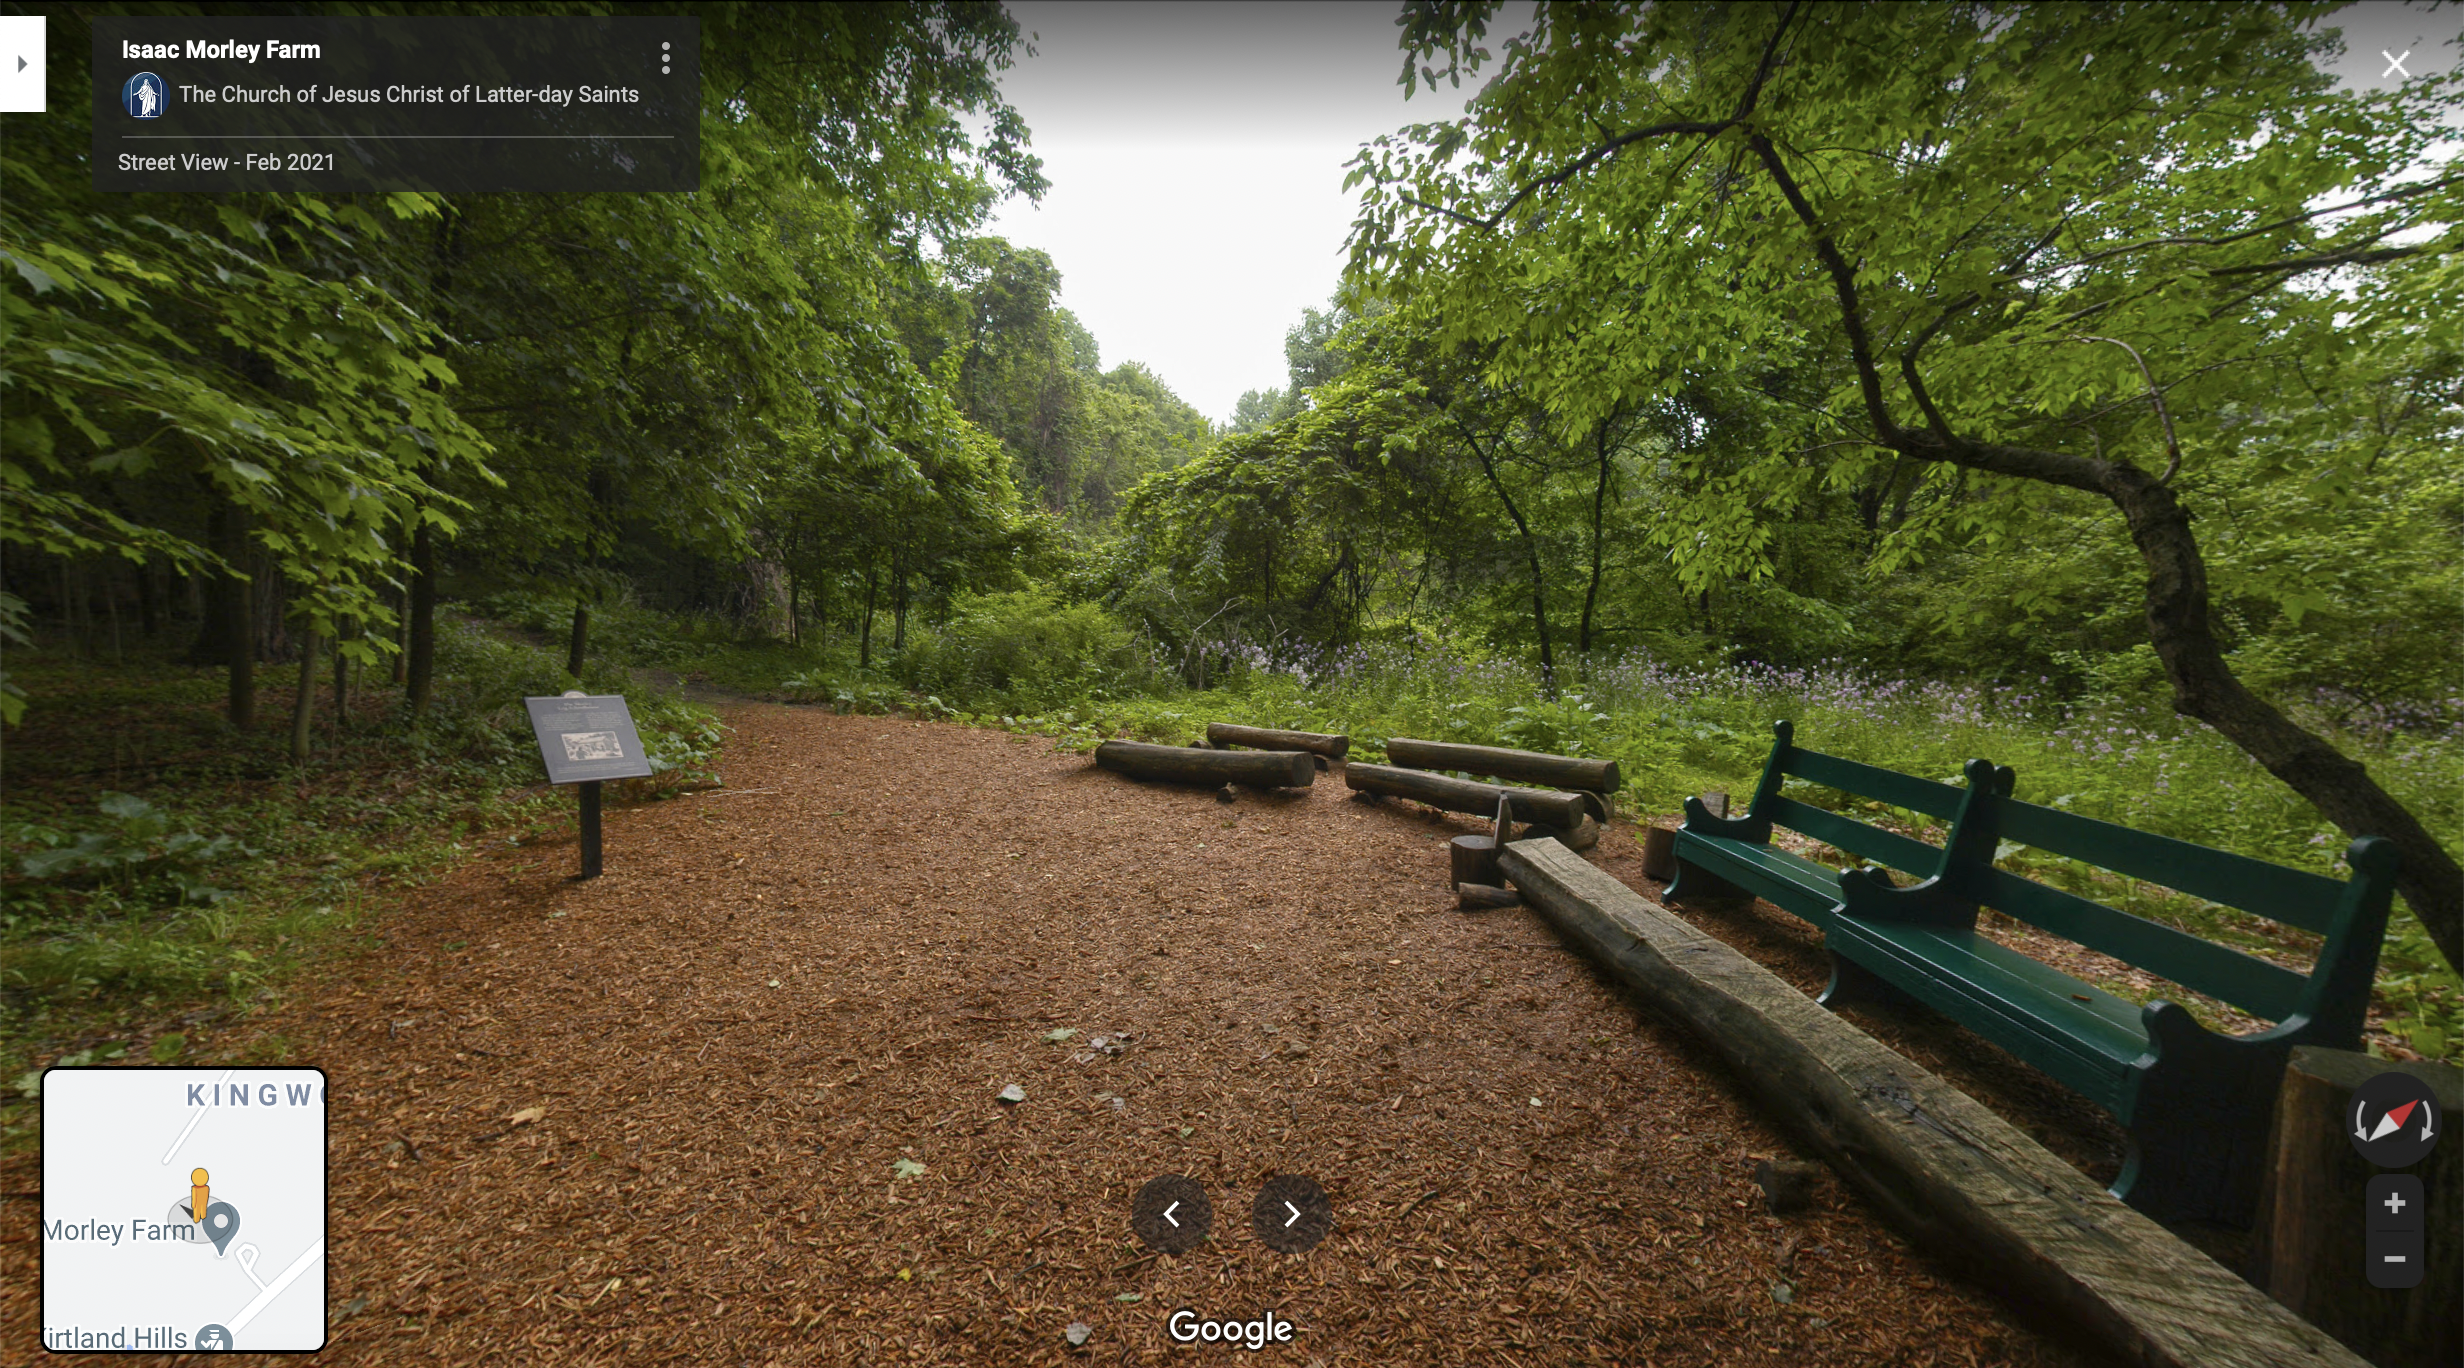 Screenshot of the Google Maps 360 view of the Isaac Morley Farm